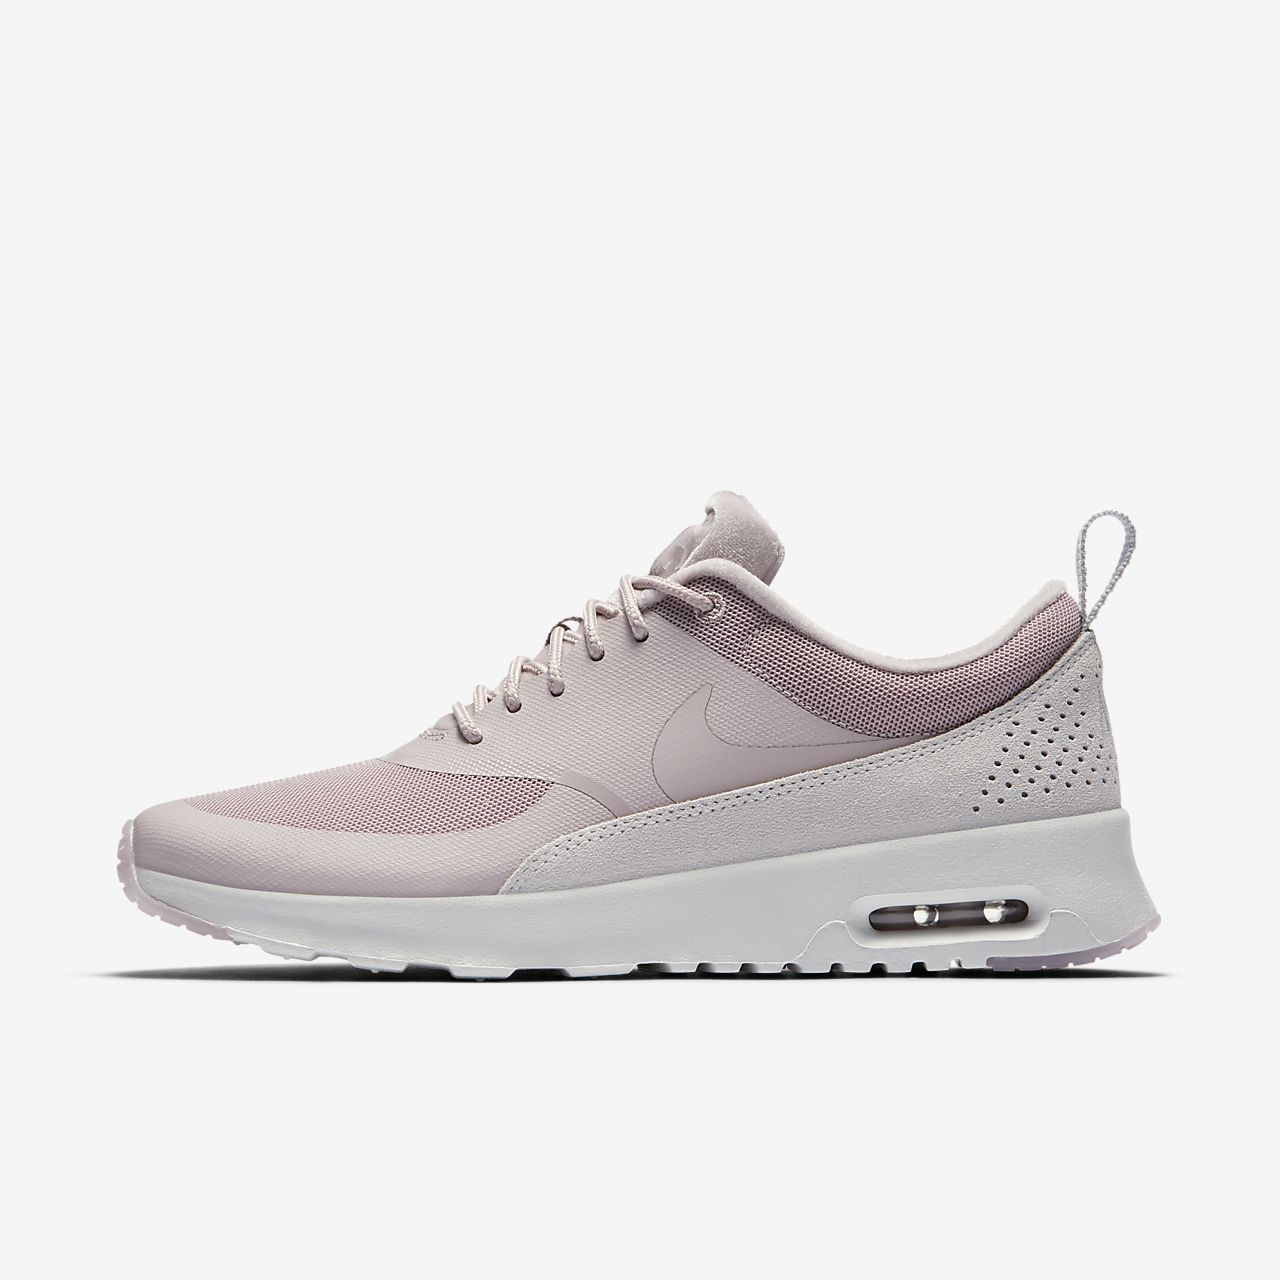 nike air max 1 premium id women's shoe nz